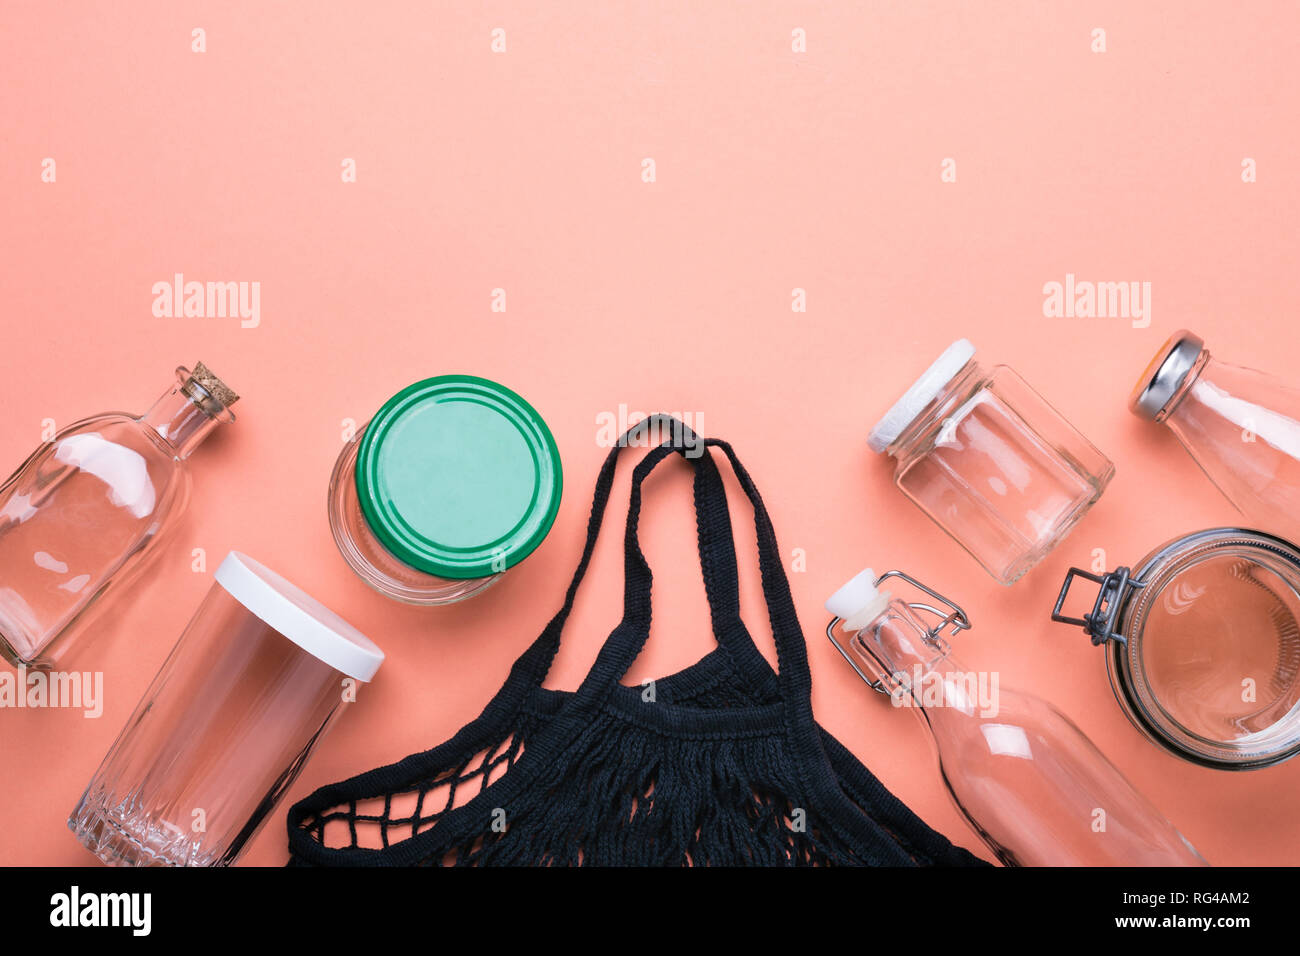 Set of jars and cotton mesh bag for zero waste shopping. - Stock Image